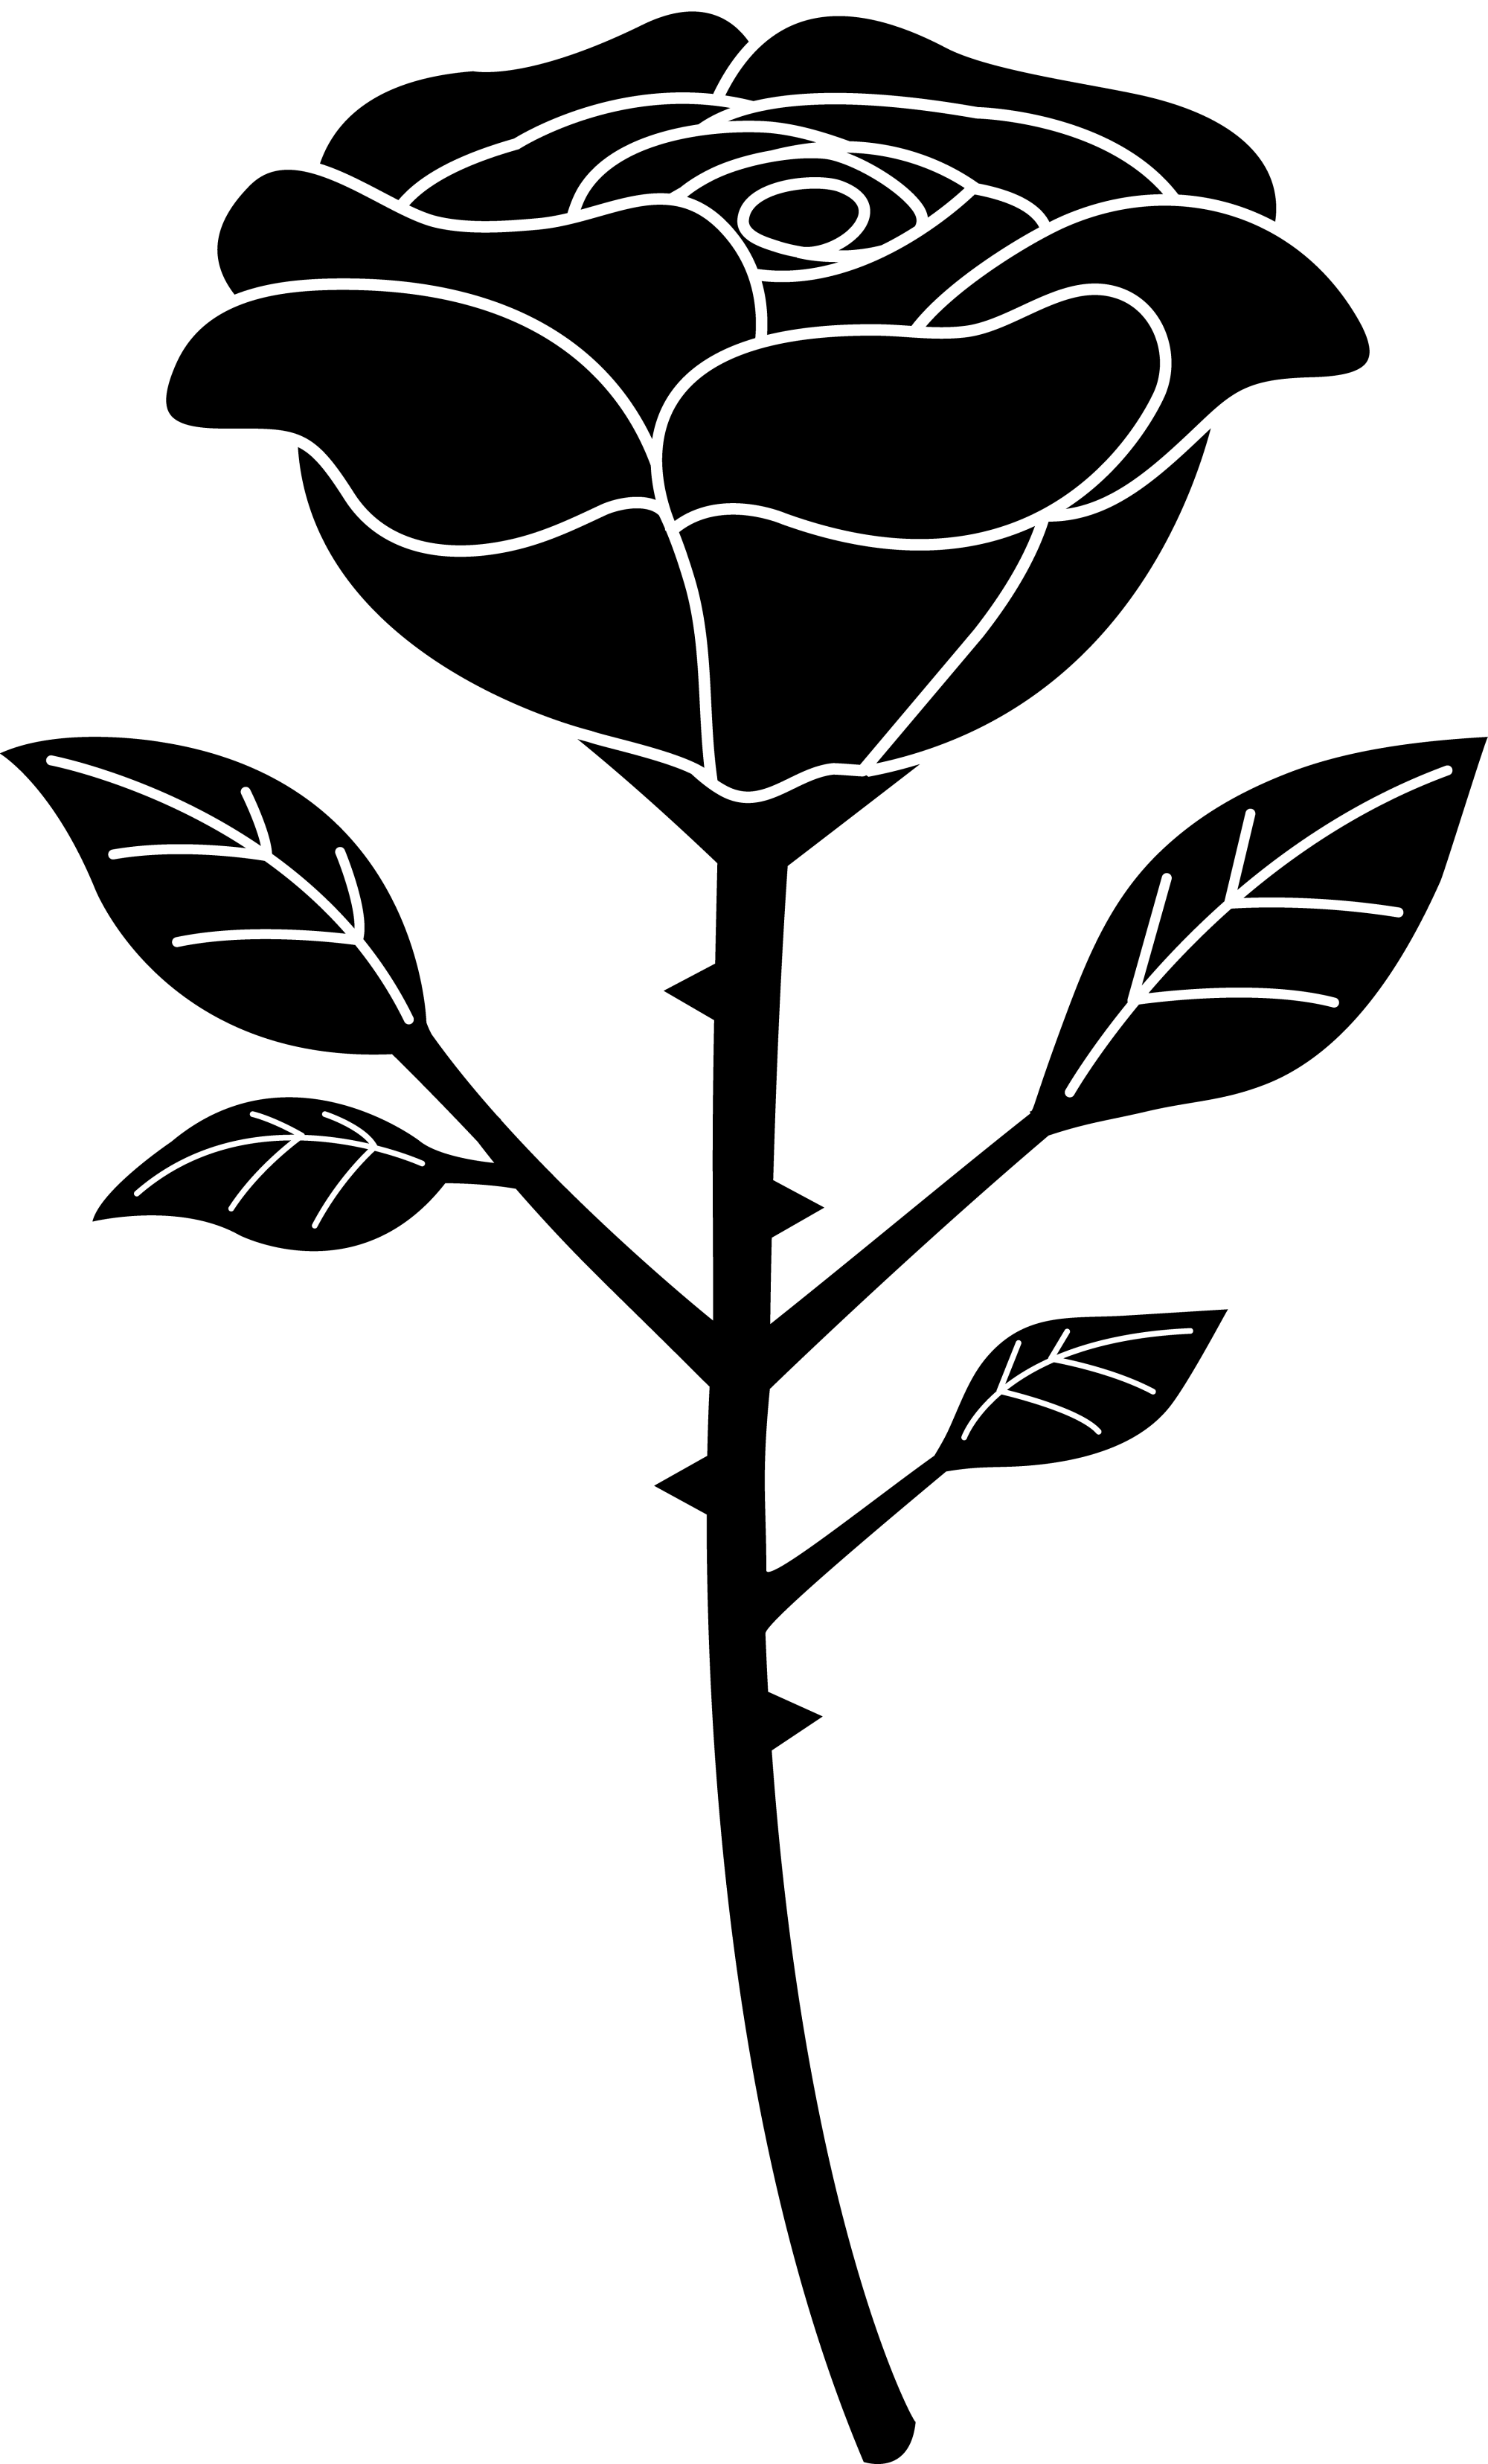 hight resolution of black silhouette of a single black rose free clip art